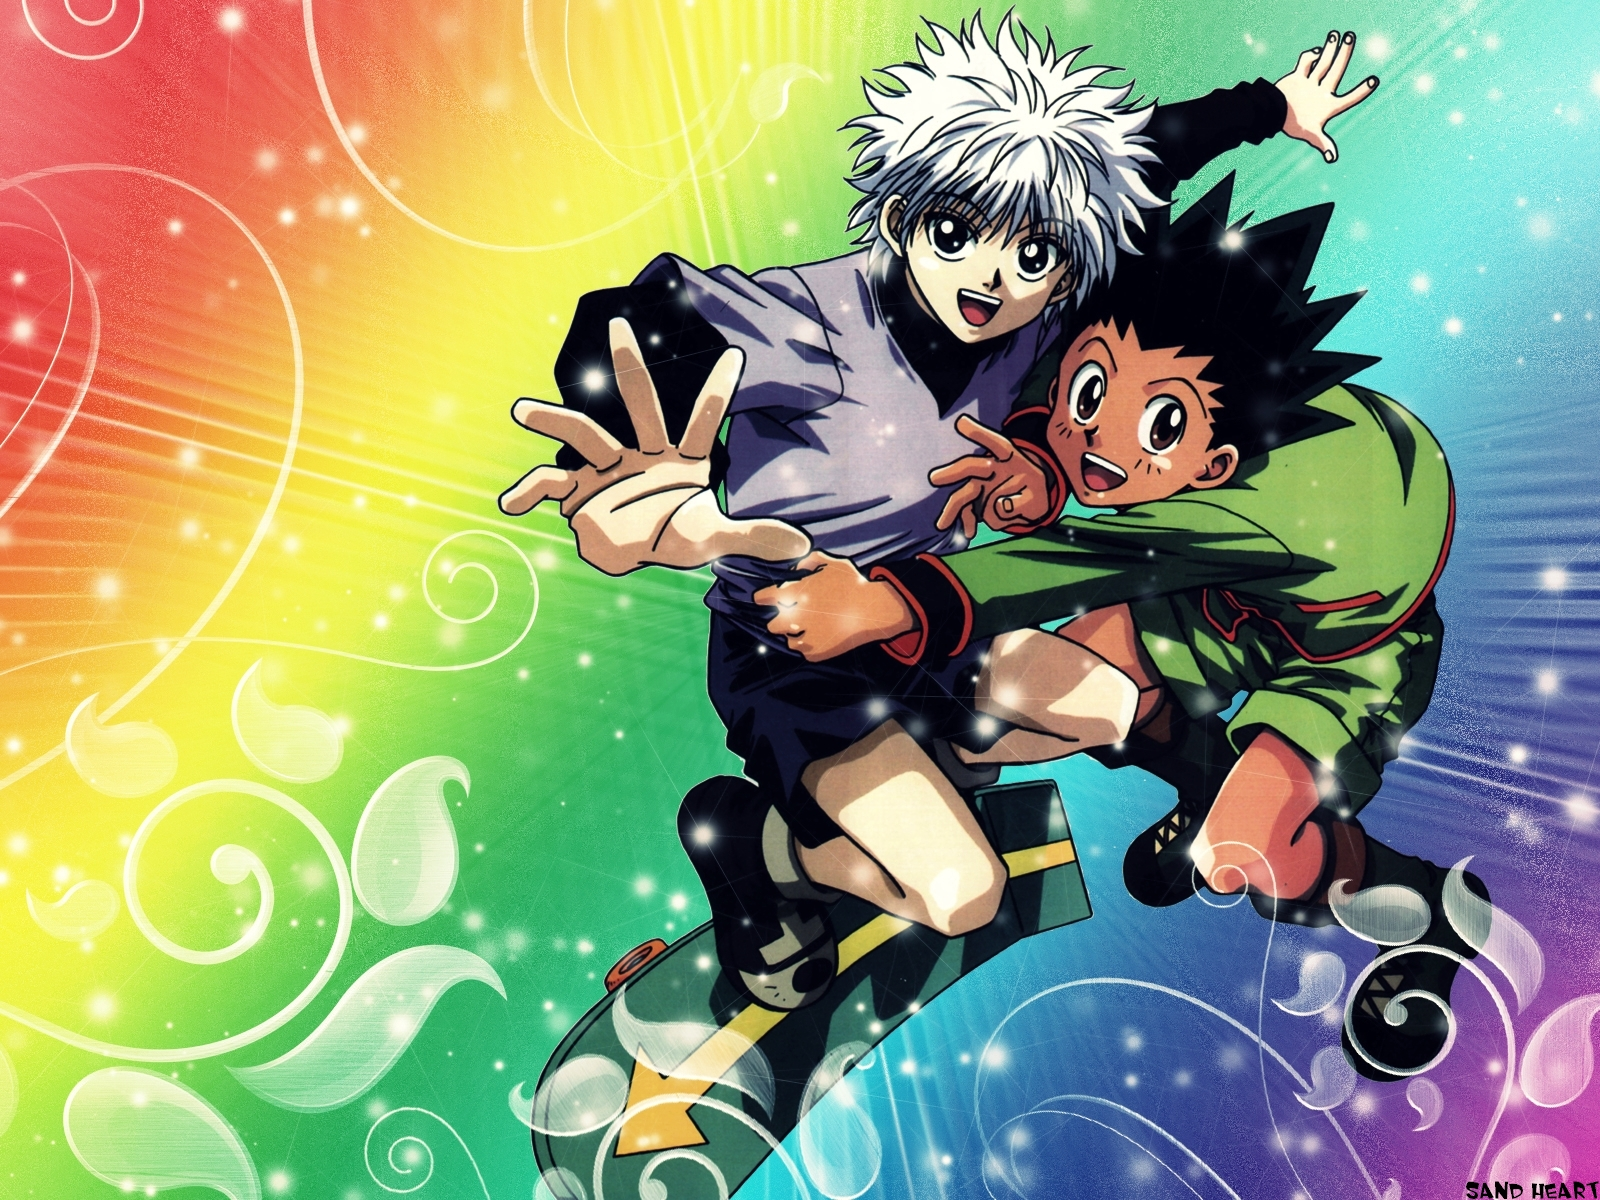 Killua and Gon